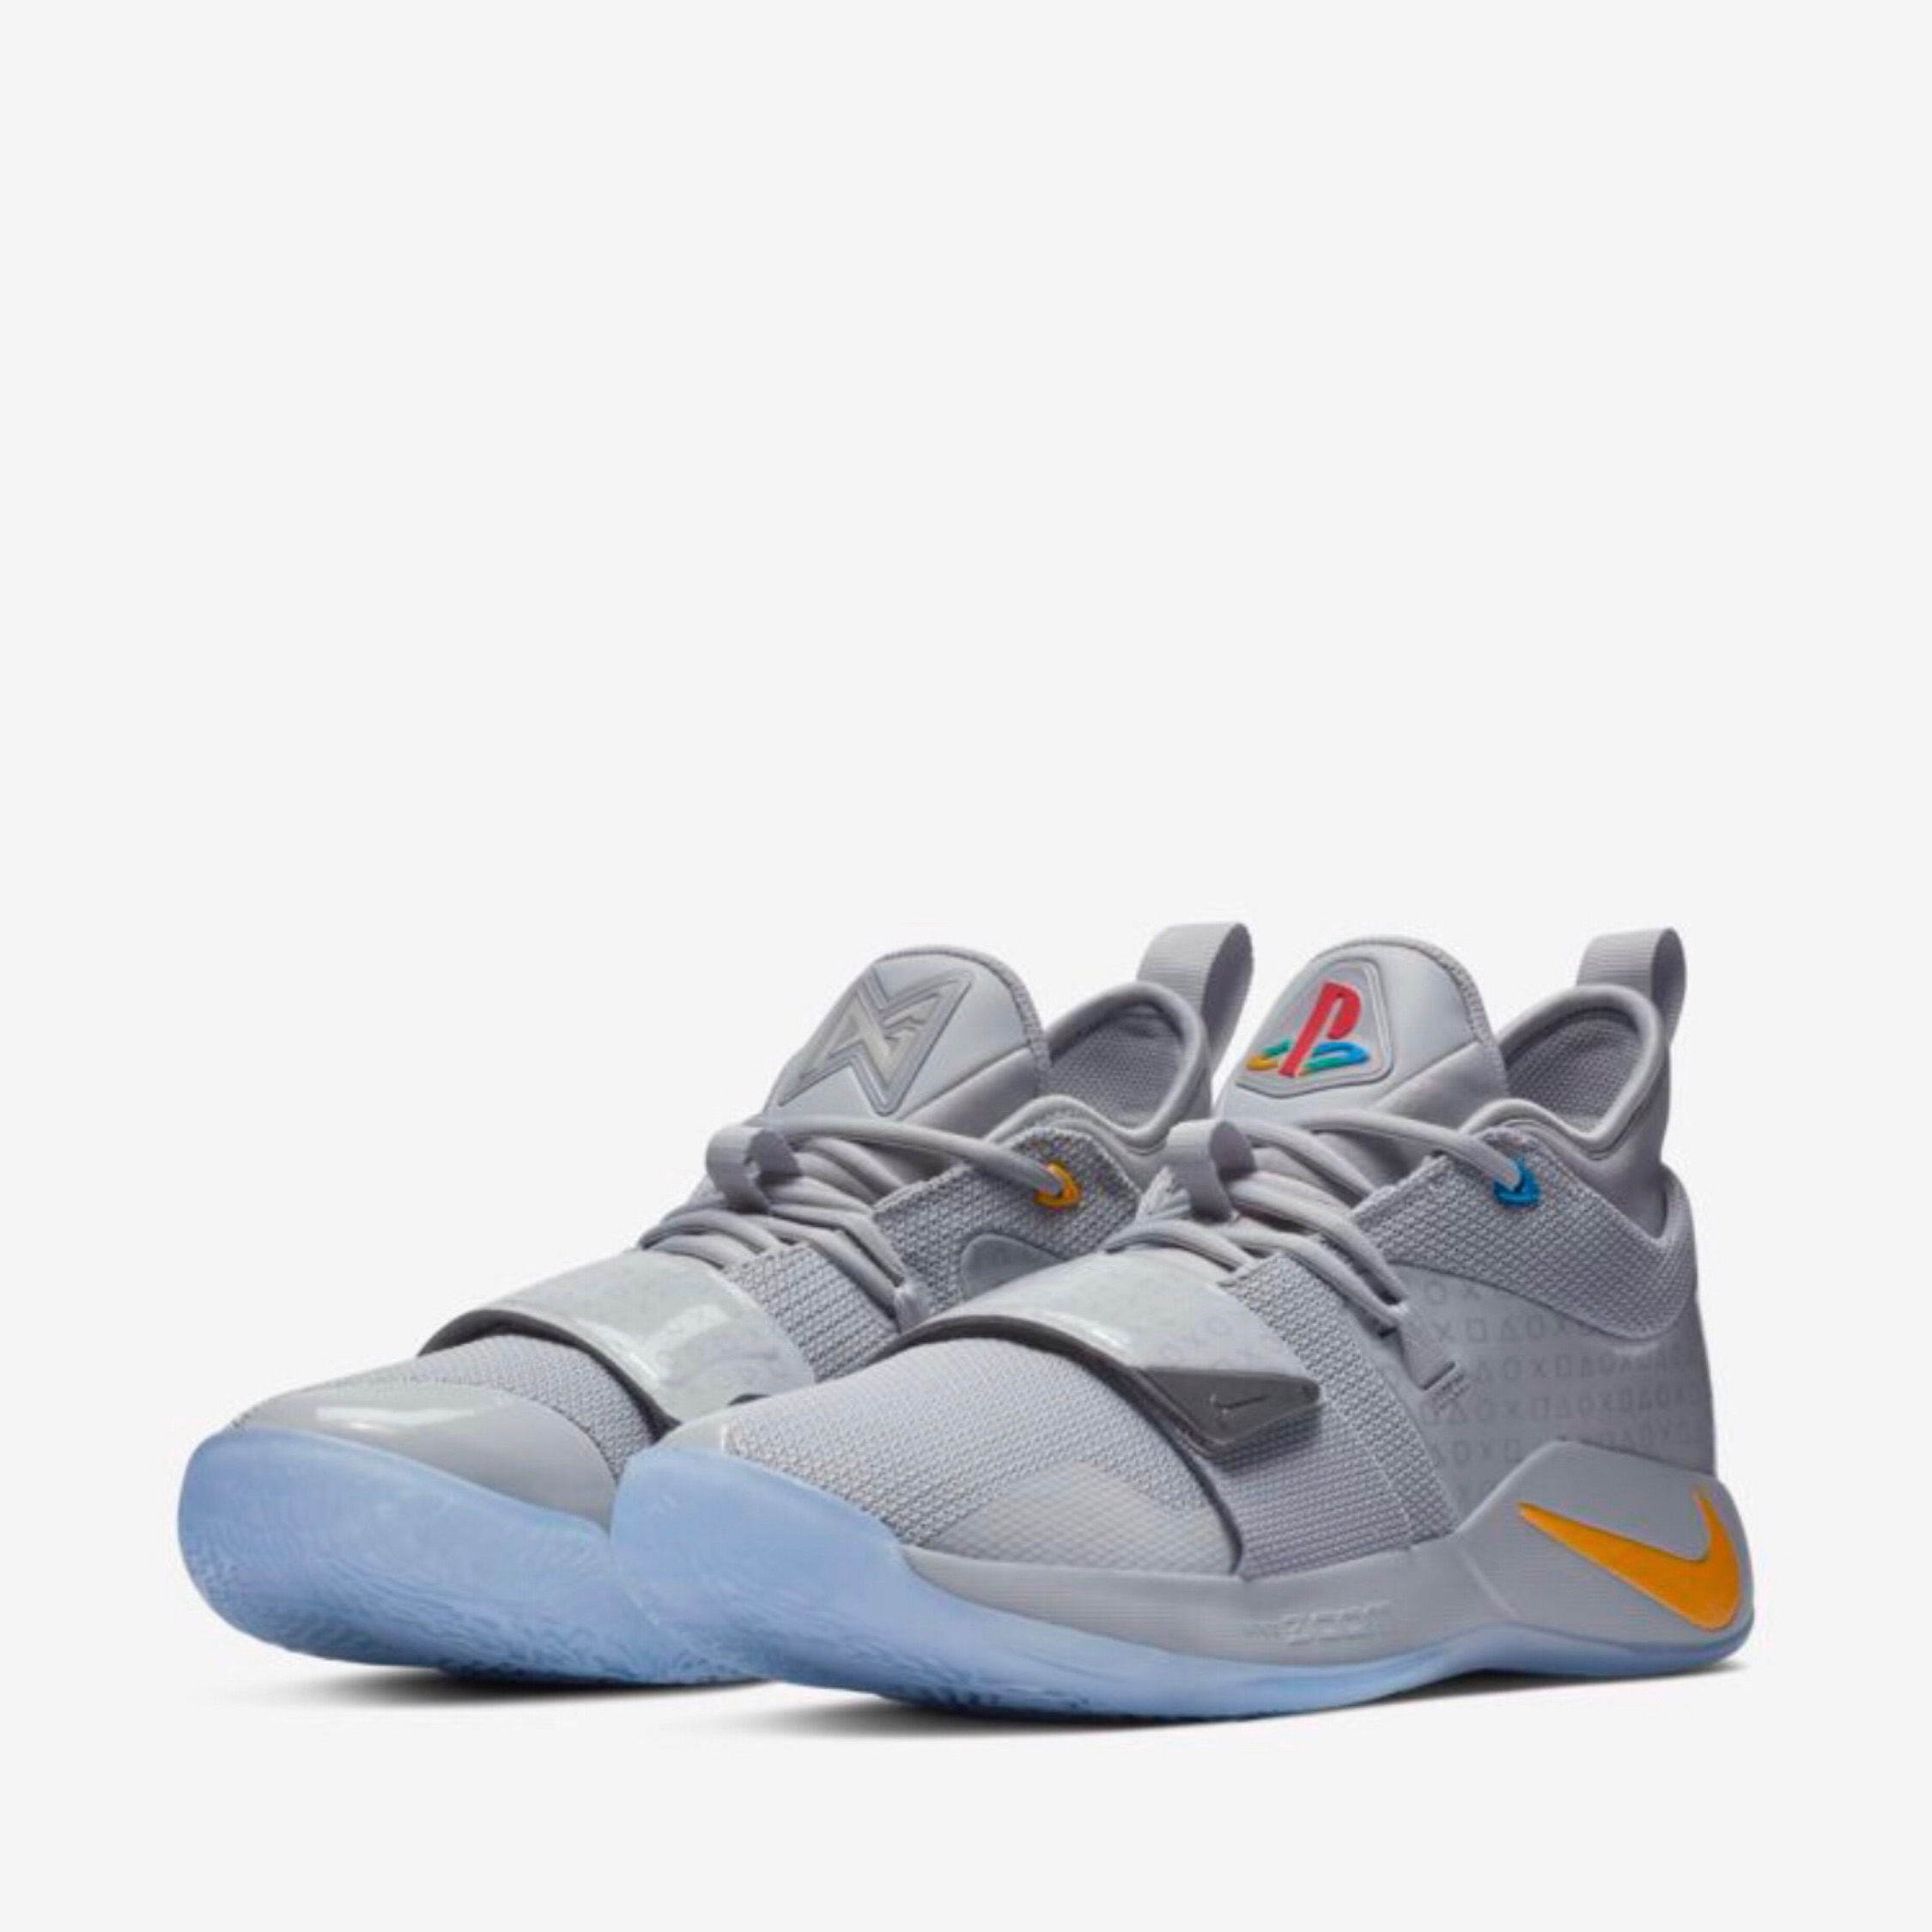 finest selection 03f1e 2c8c9 Nike Pg 2.5 Playstation Wolf Grey